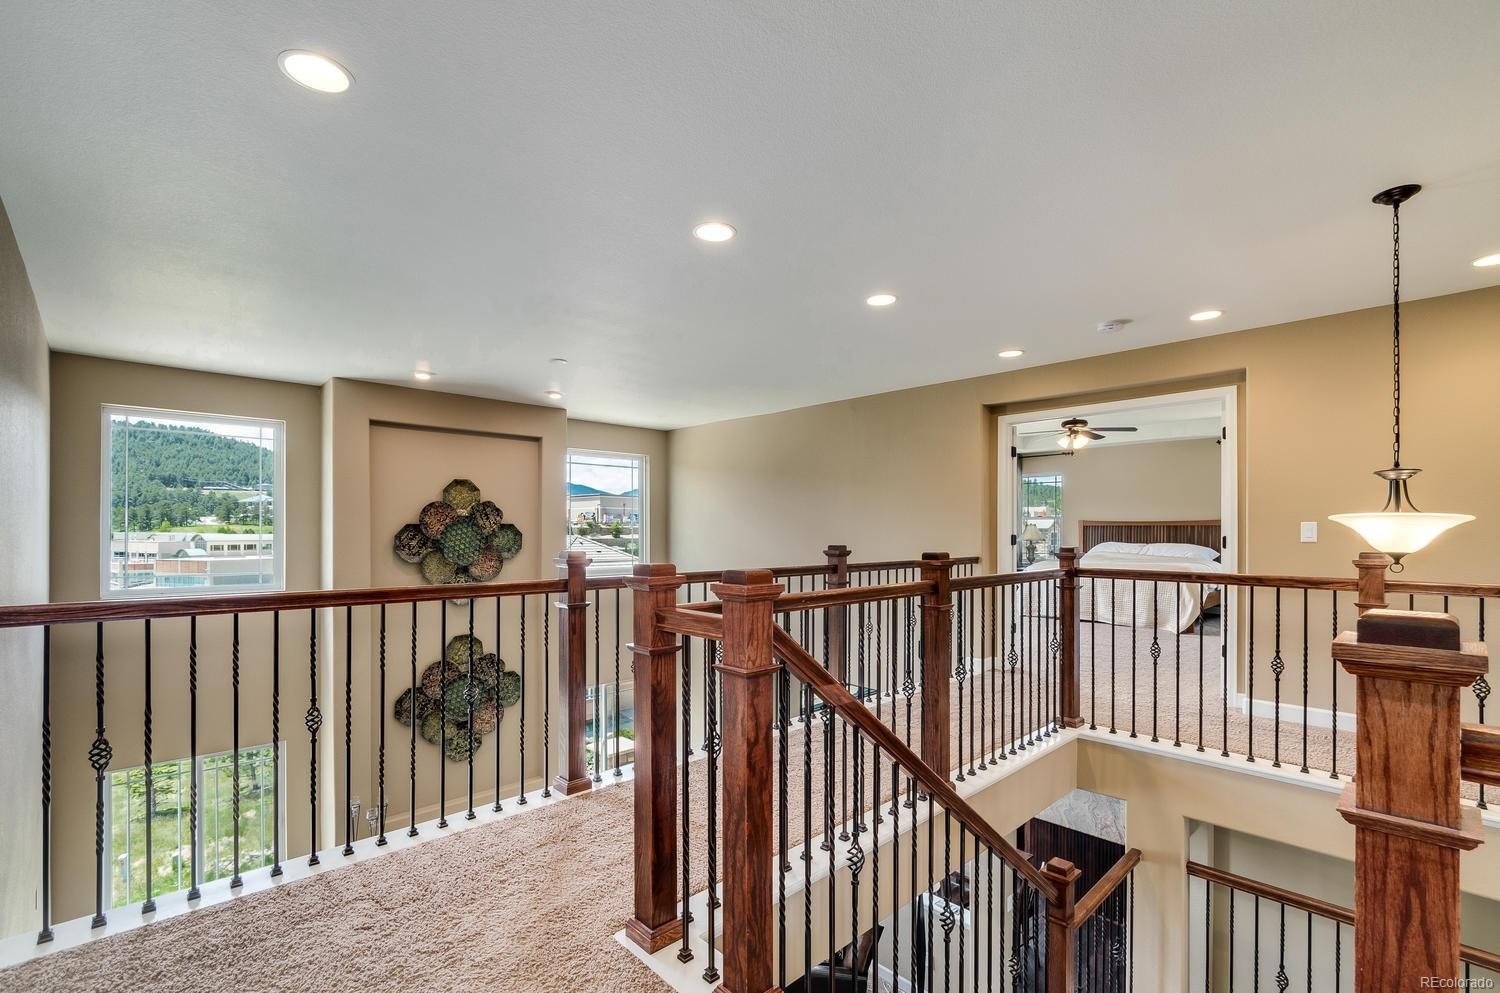 Wide Second Floor Landing with Private Master Suite From Secondary Bedrooms